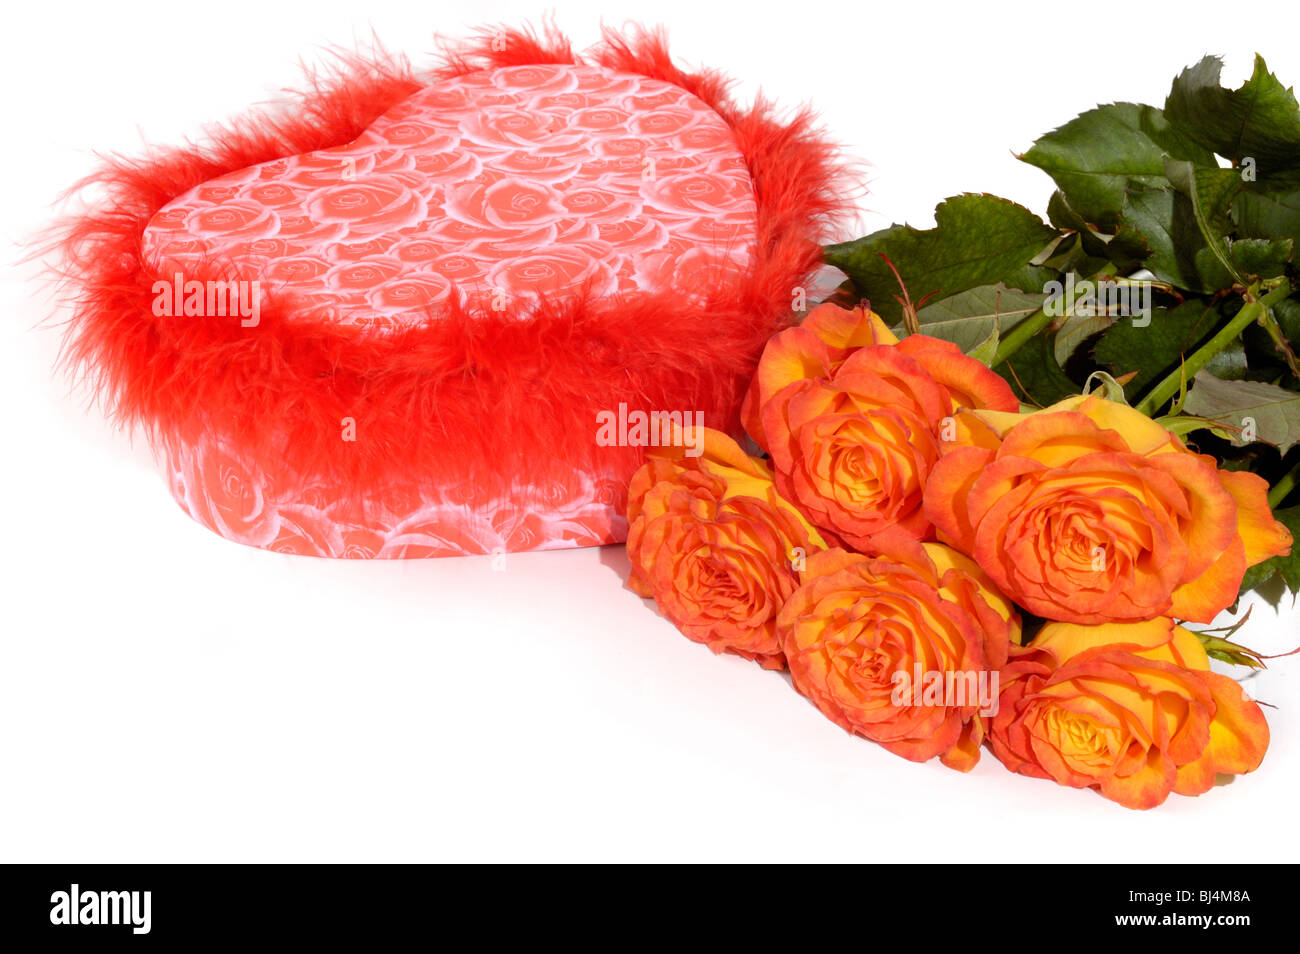 Hear shaped gift box and bunch of orange roses isolated on white background Conceptual still life Stock Photo